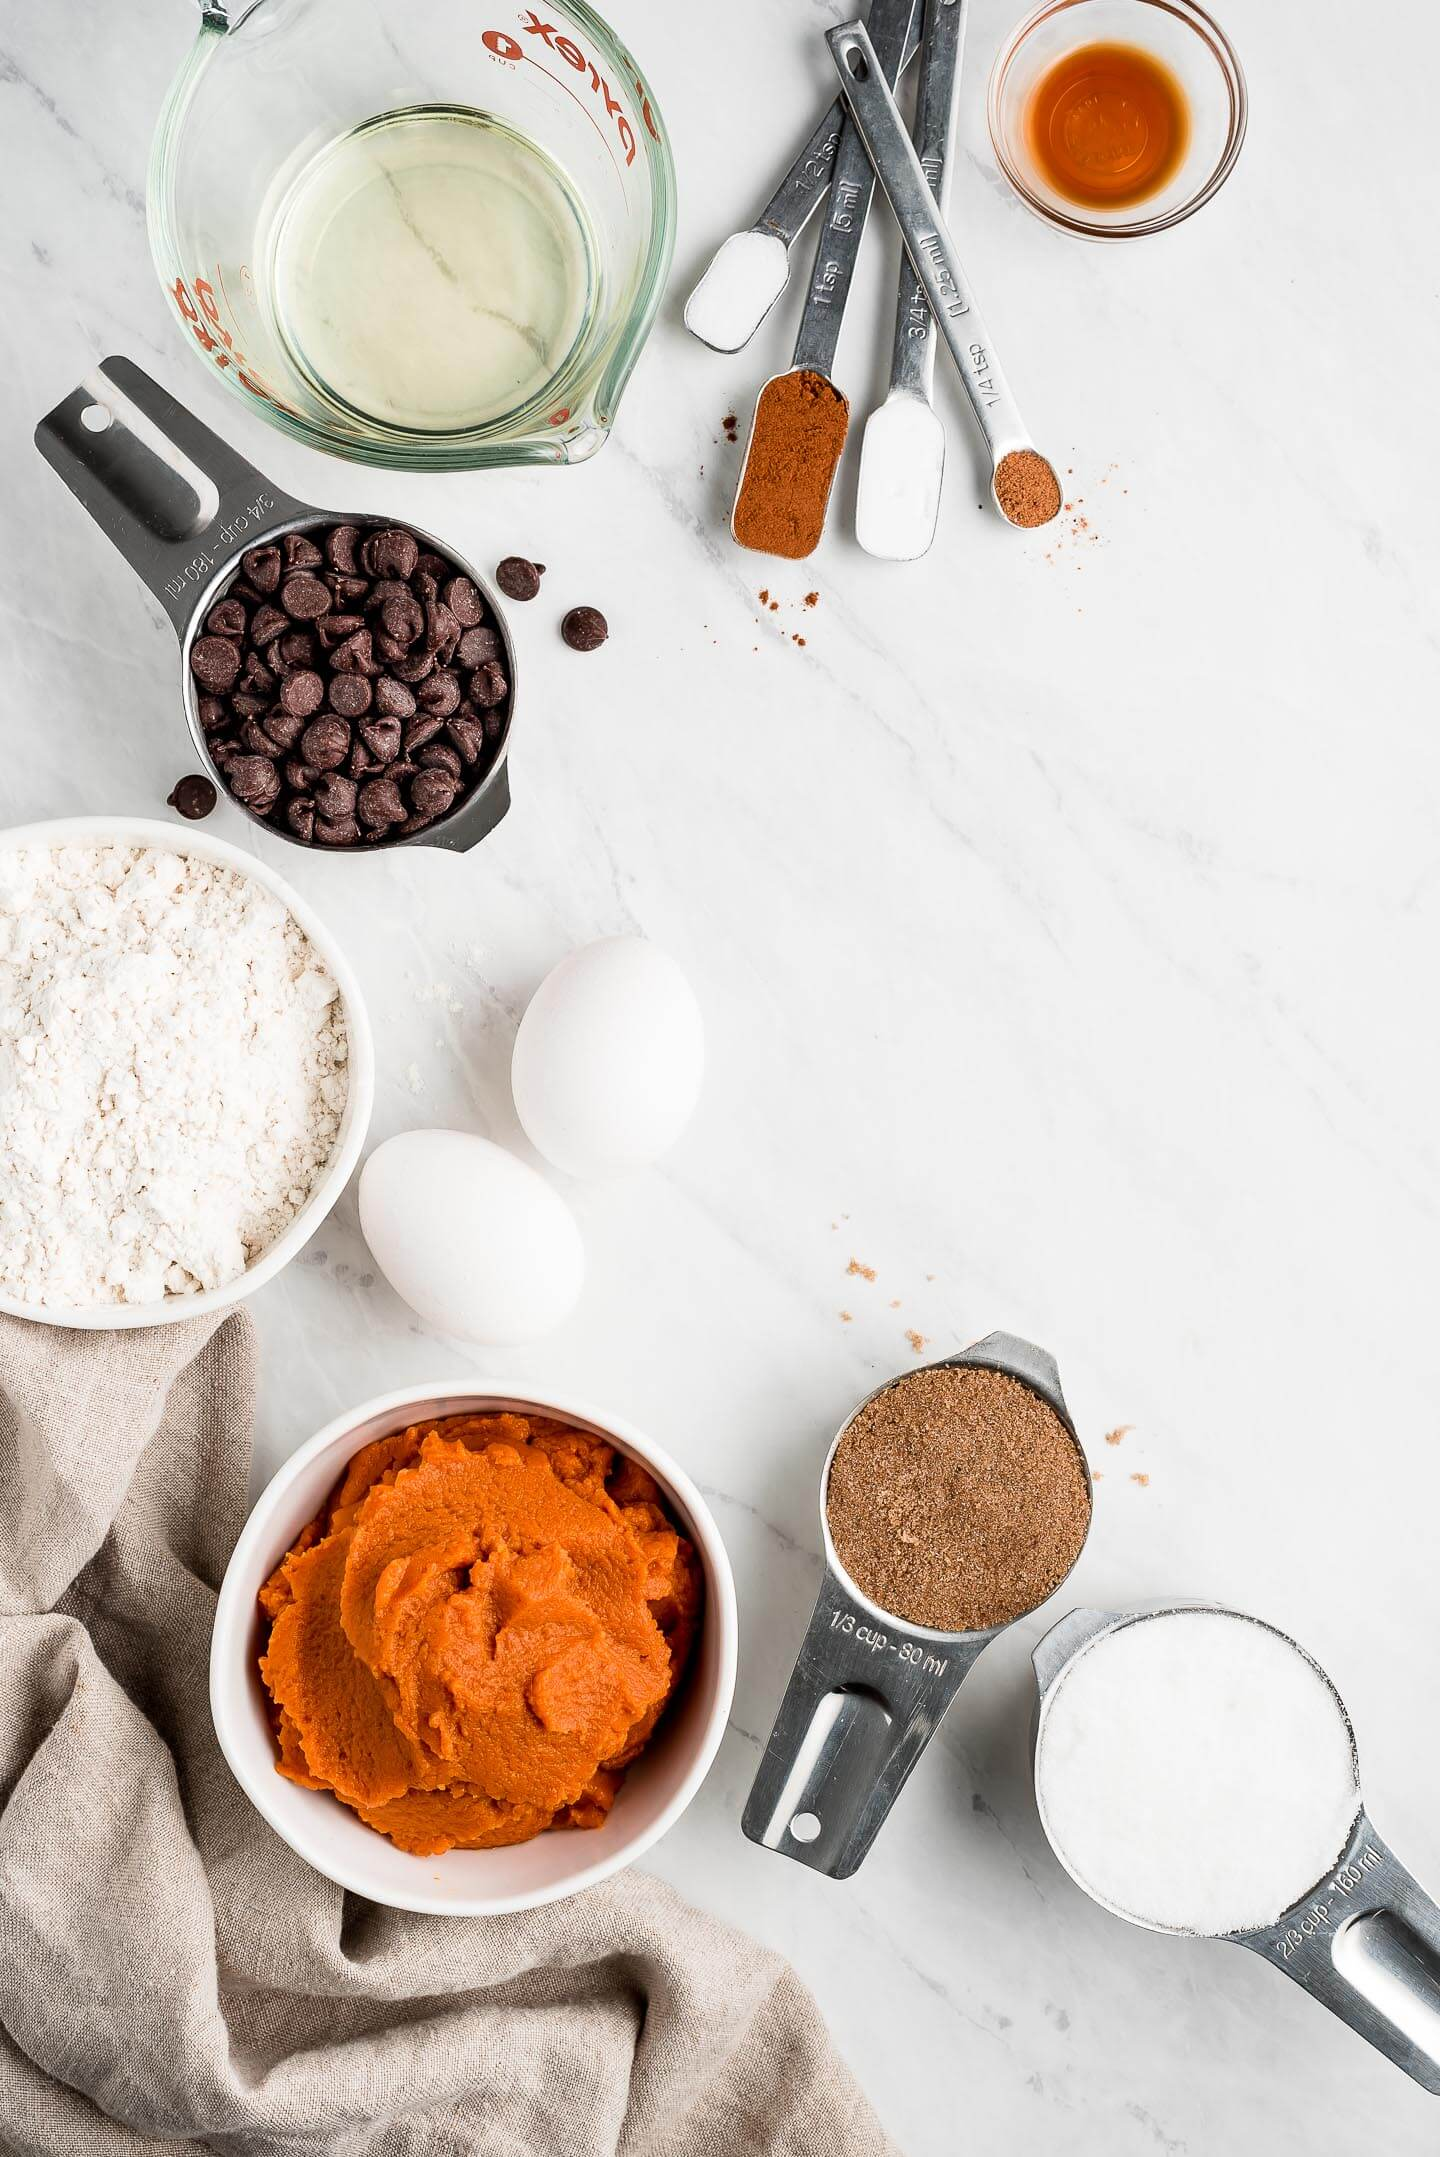 Shot of ingredients on a marble surface- flour, pumpkin pure, eggs, oil, chocolate chips, sugar, spices, and vanilla.